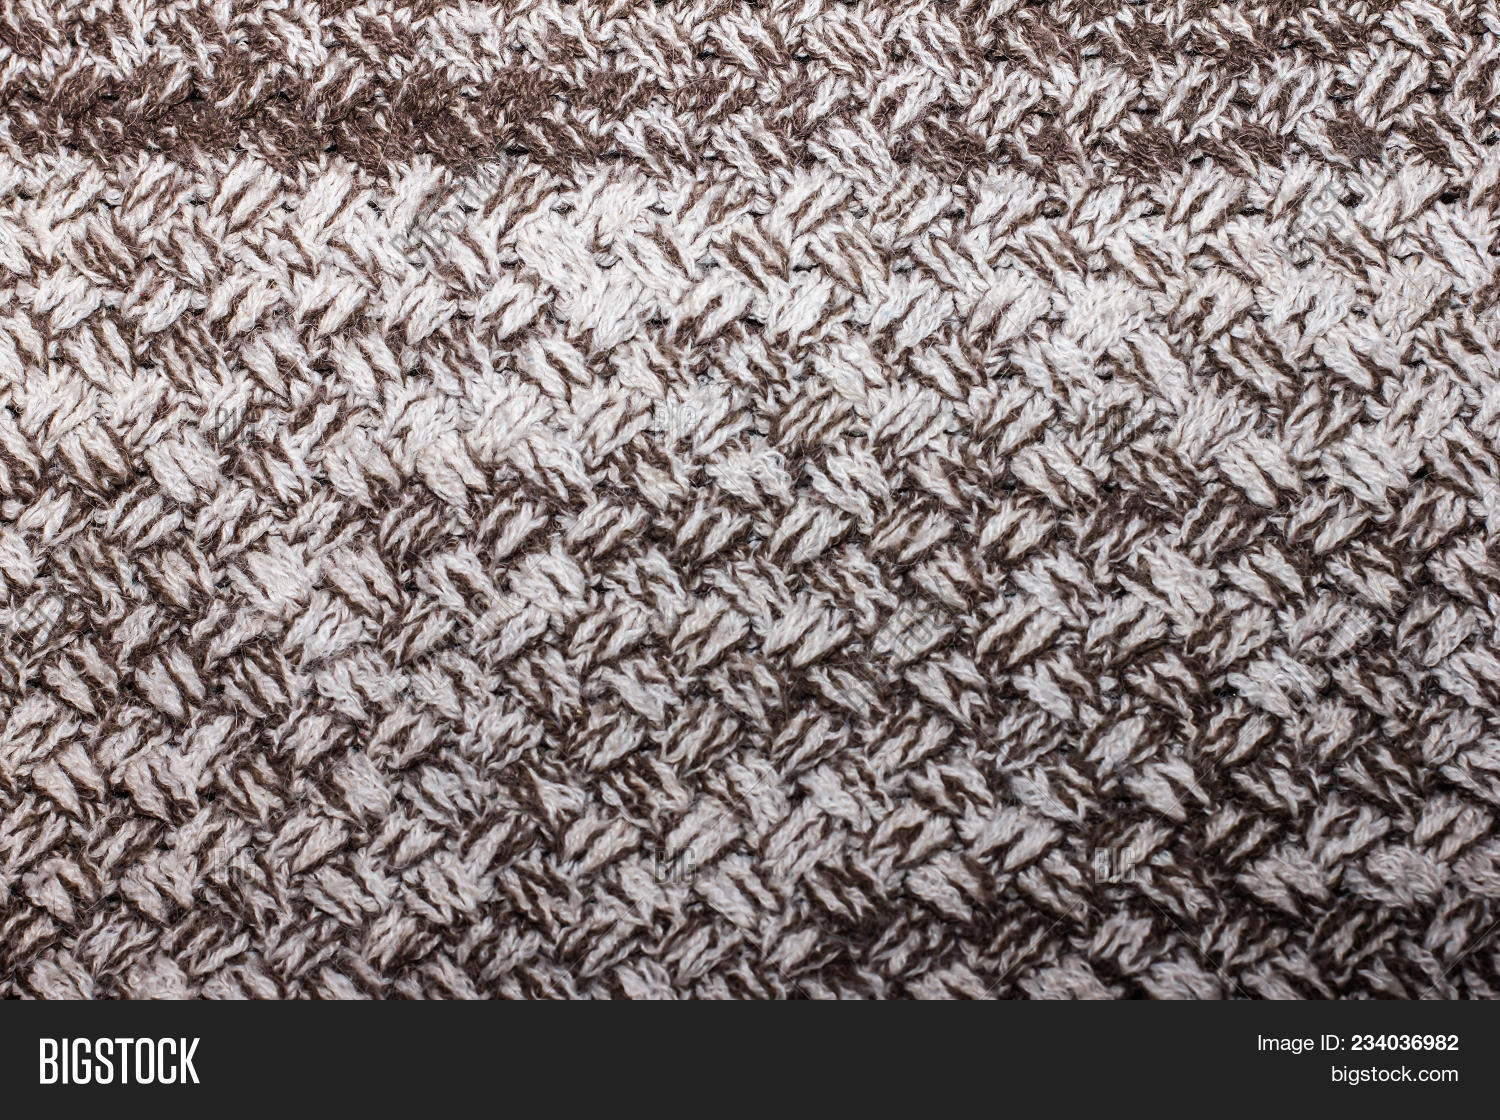 8395c601a9043 Sweater texture of big knitting. Knitted jersey background with a relief  pattern. Wool is hand knitted or machine knitting. Background of fabric.